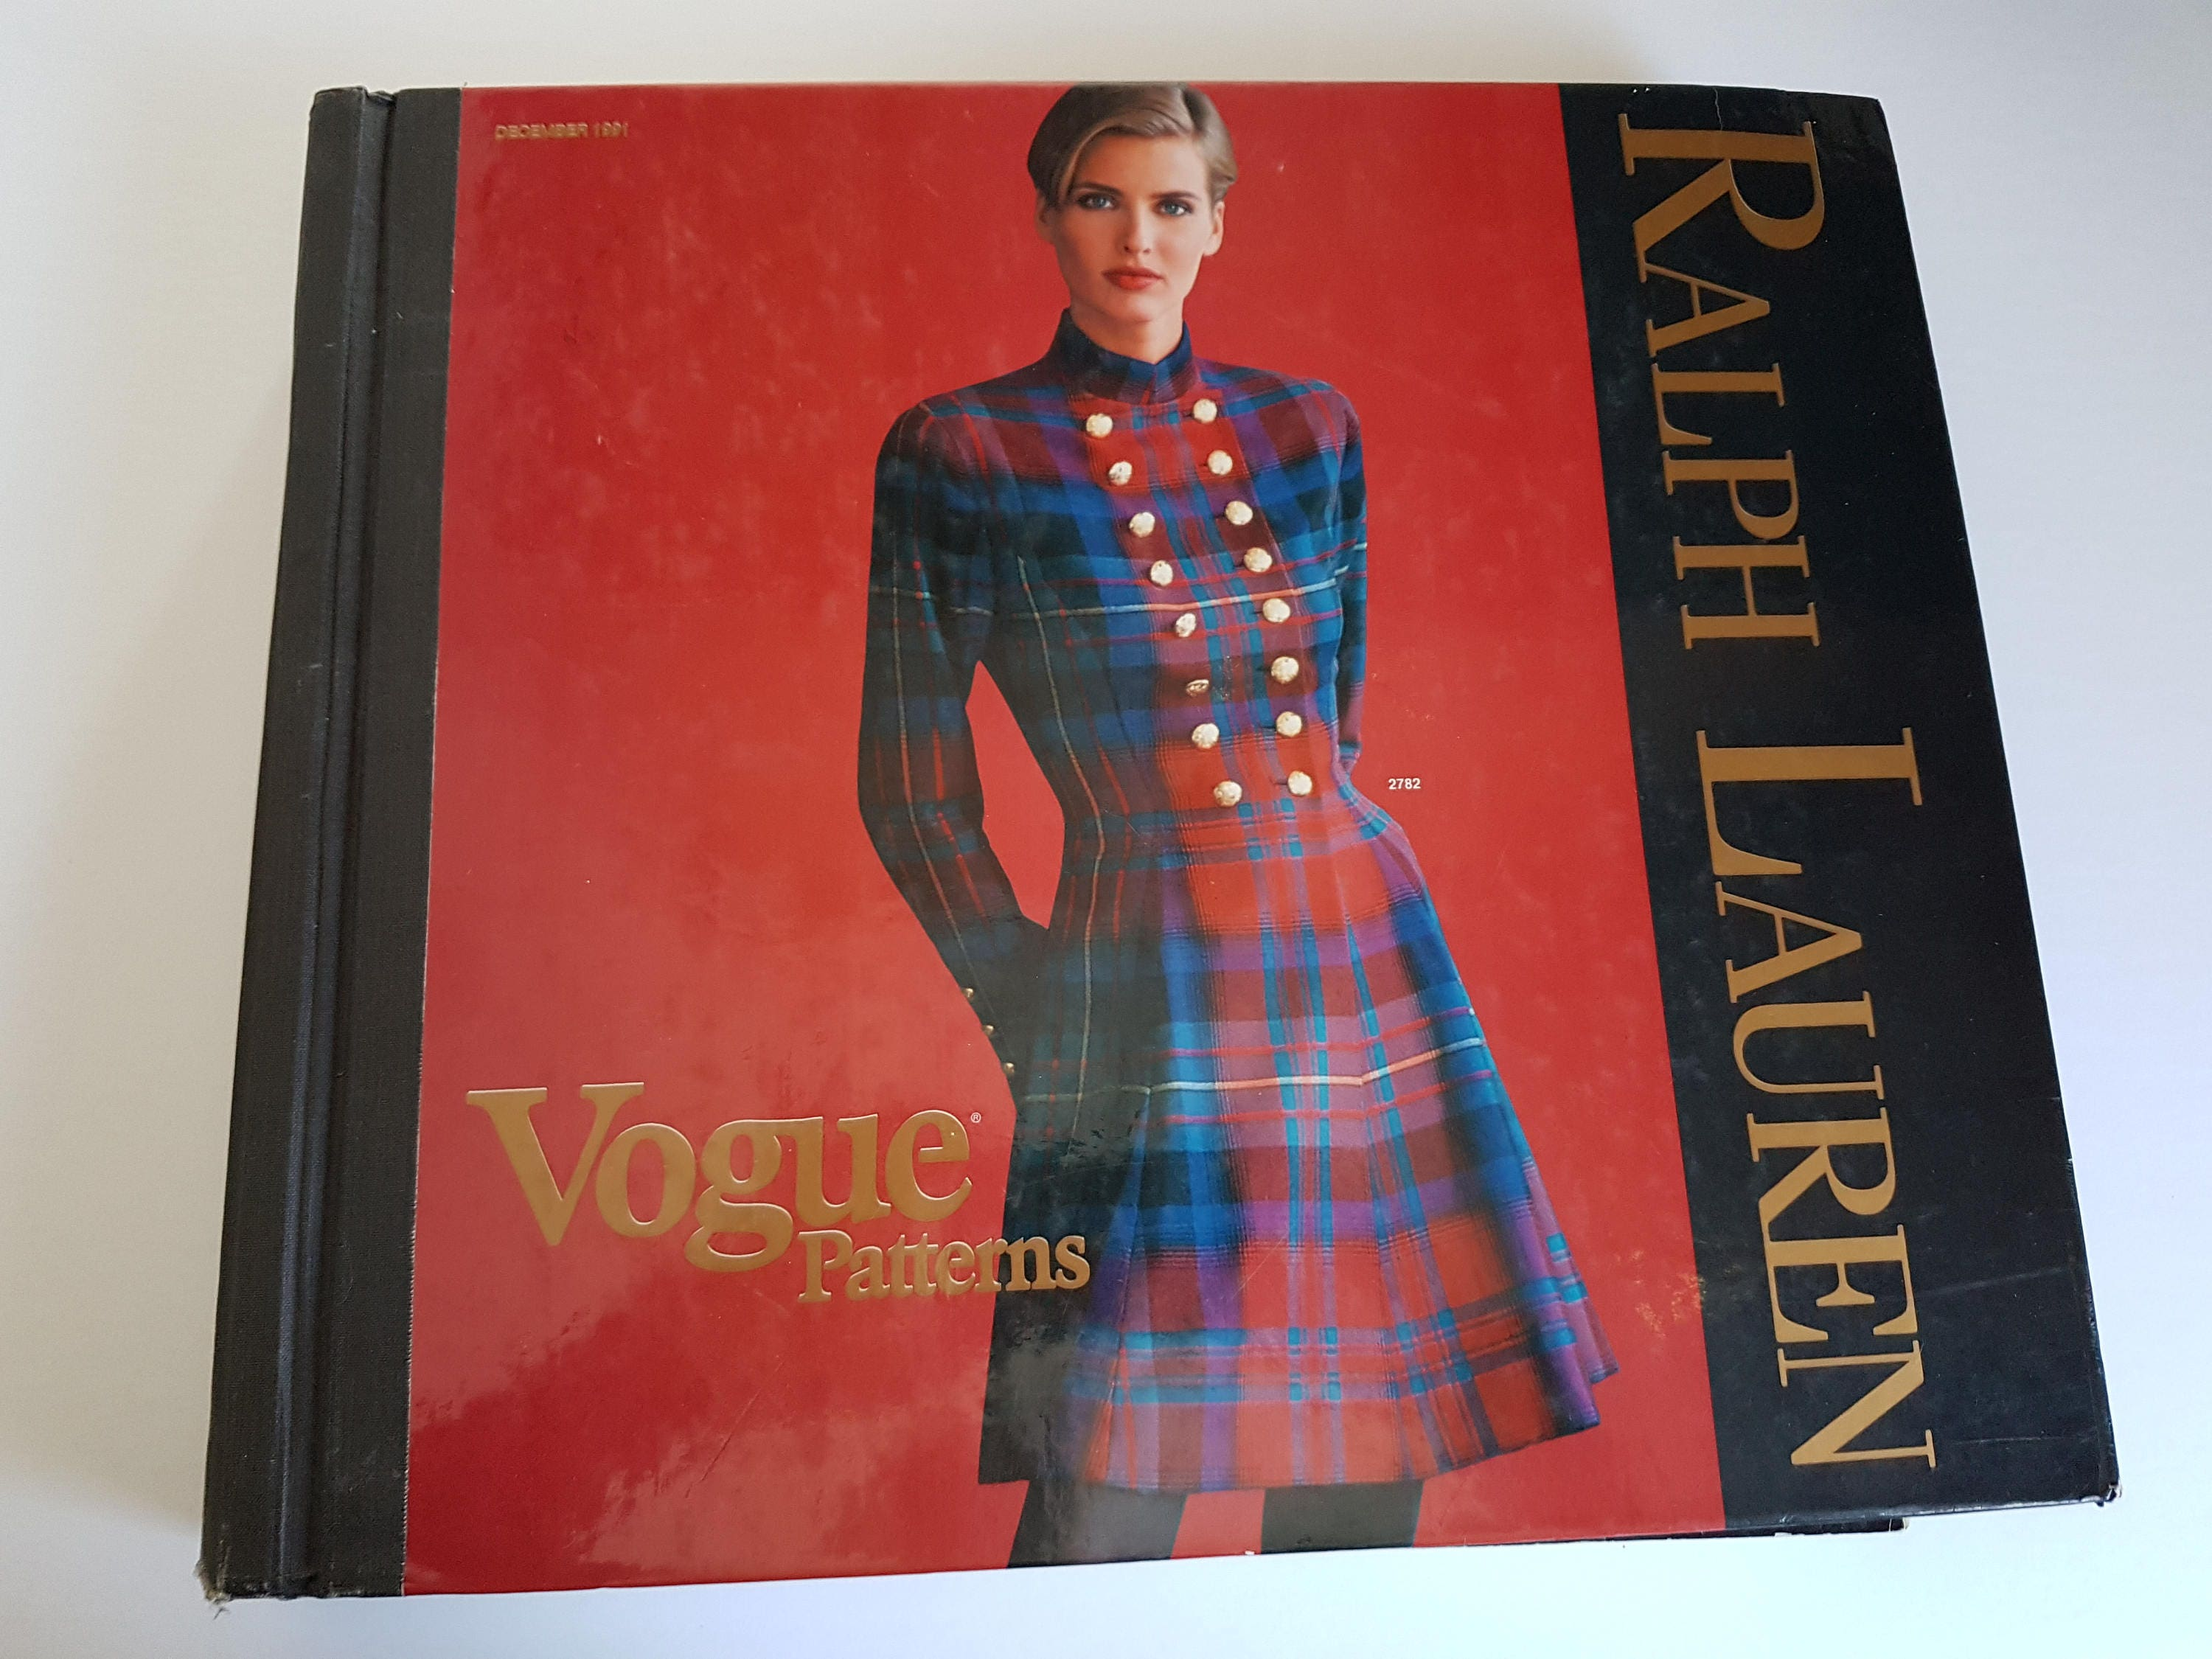 Vogue 2782 by Ralph Lauren, Vogue Patterns catalogue, December 1991